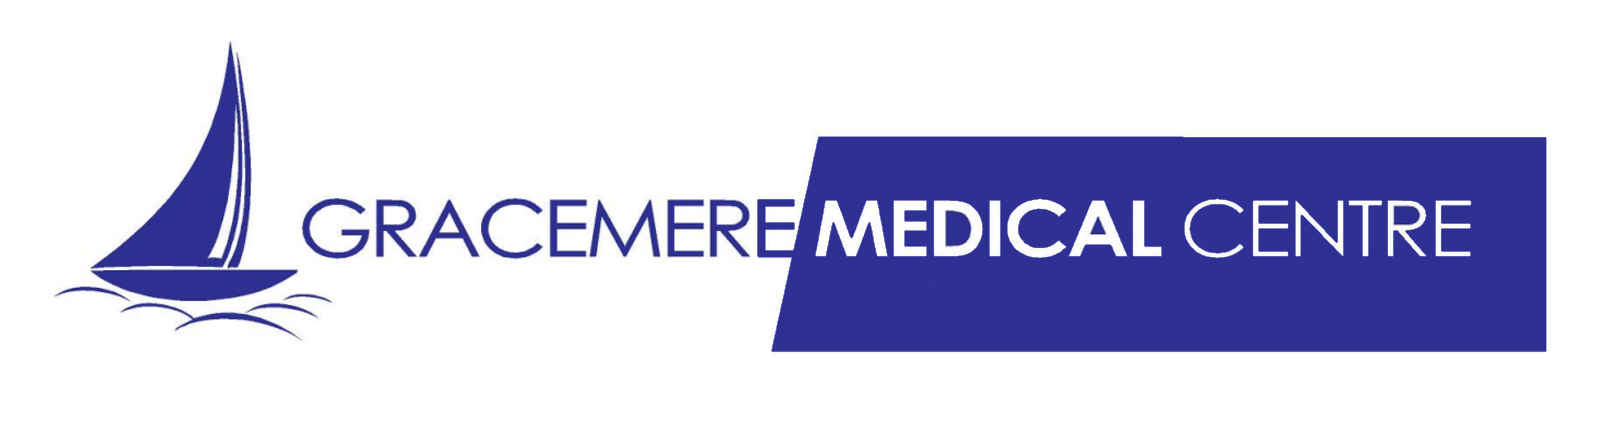 Gracemere Medical Centre Logo